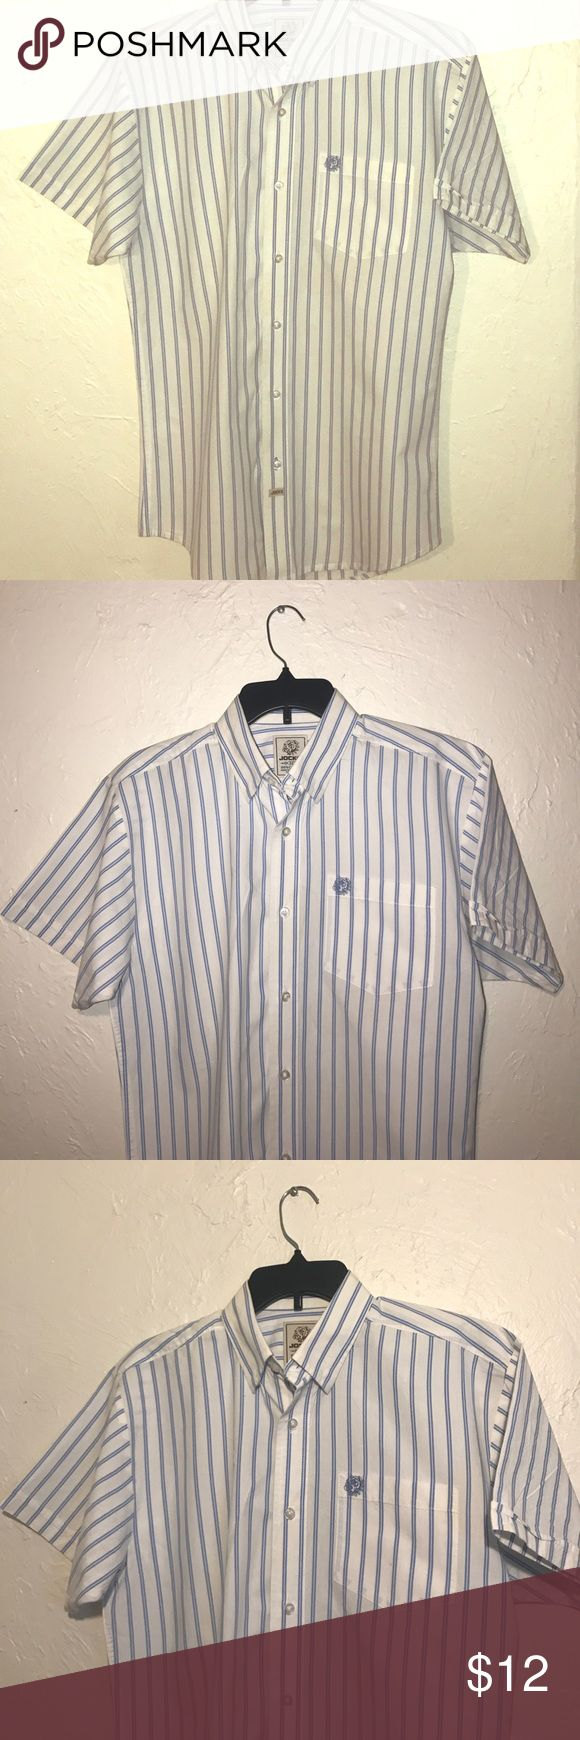 Men's Jocko white with blue stripes button down Short sleeve, casual, 100% cotton. Light blue stripes on white. Clean, free of holes stains or odor! Size medium, true to size. jocko Shirts Casual Button Down Shirts